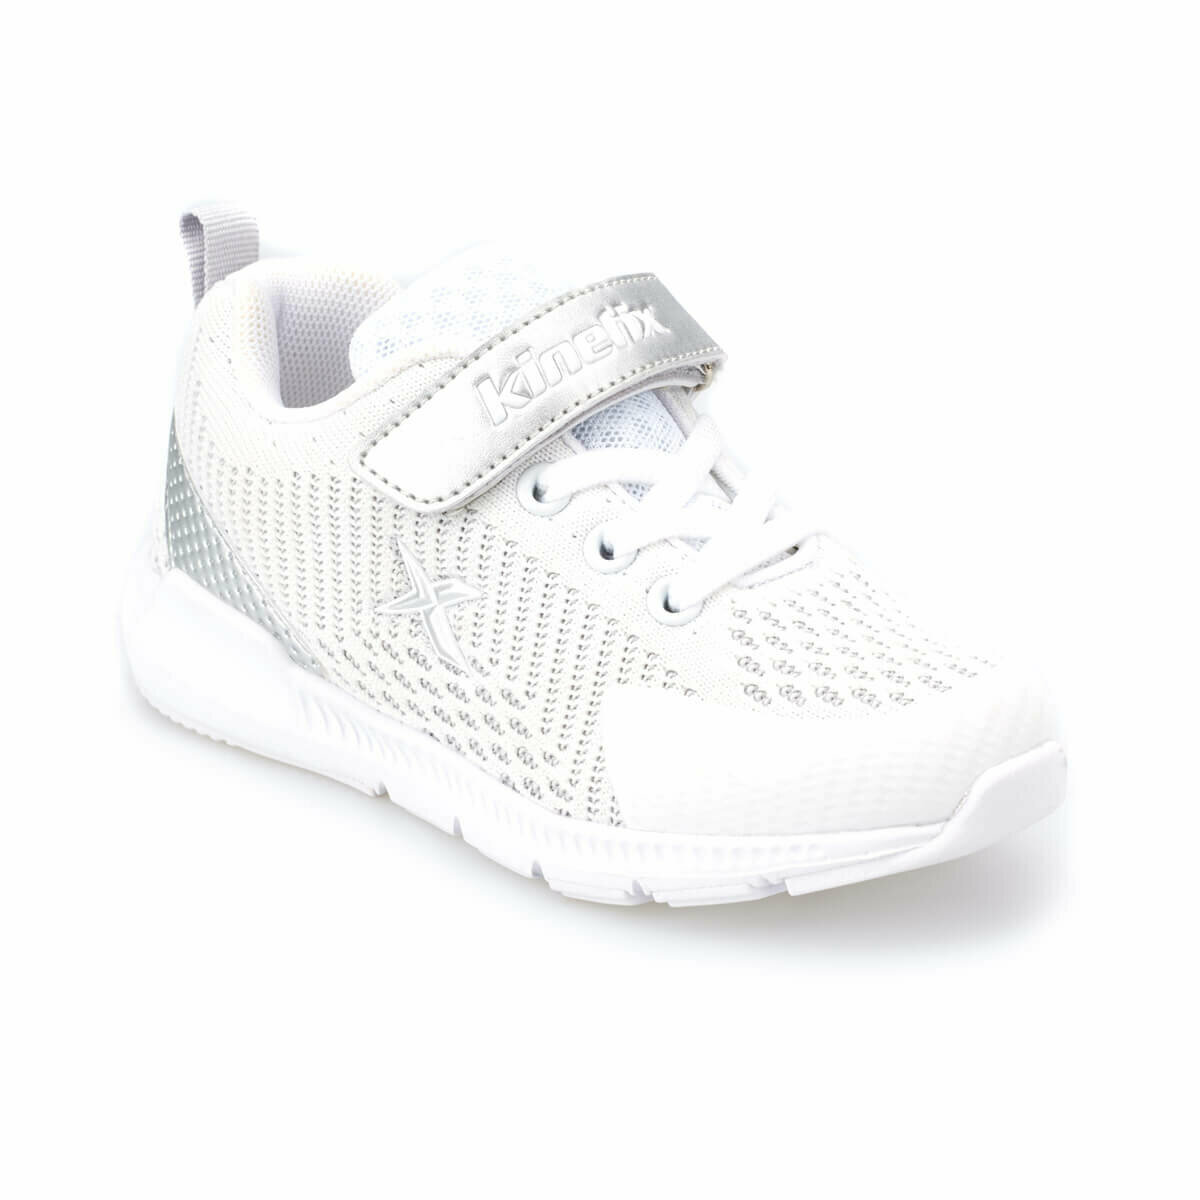 FLO ROTTEN White Female Child Running Shoes KINETIX